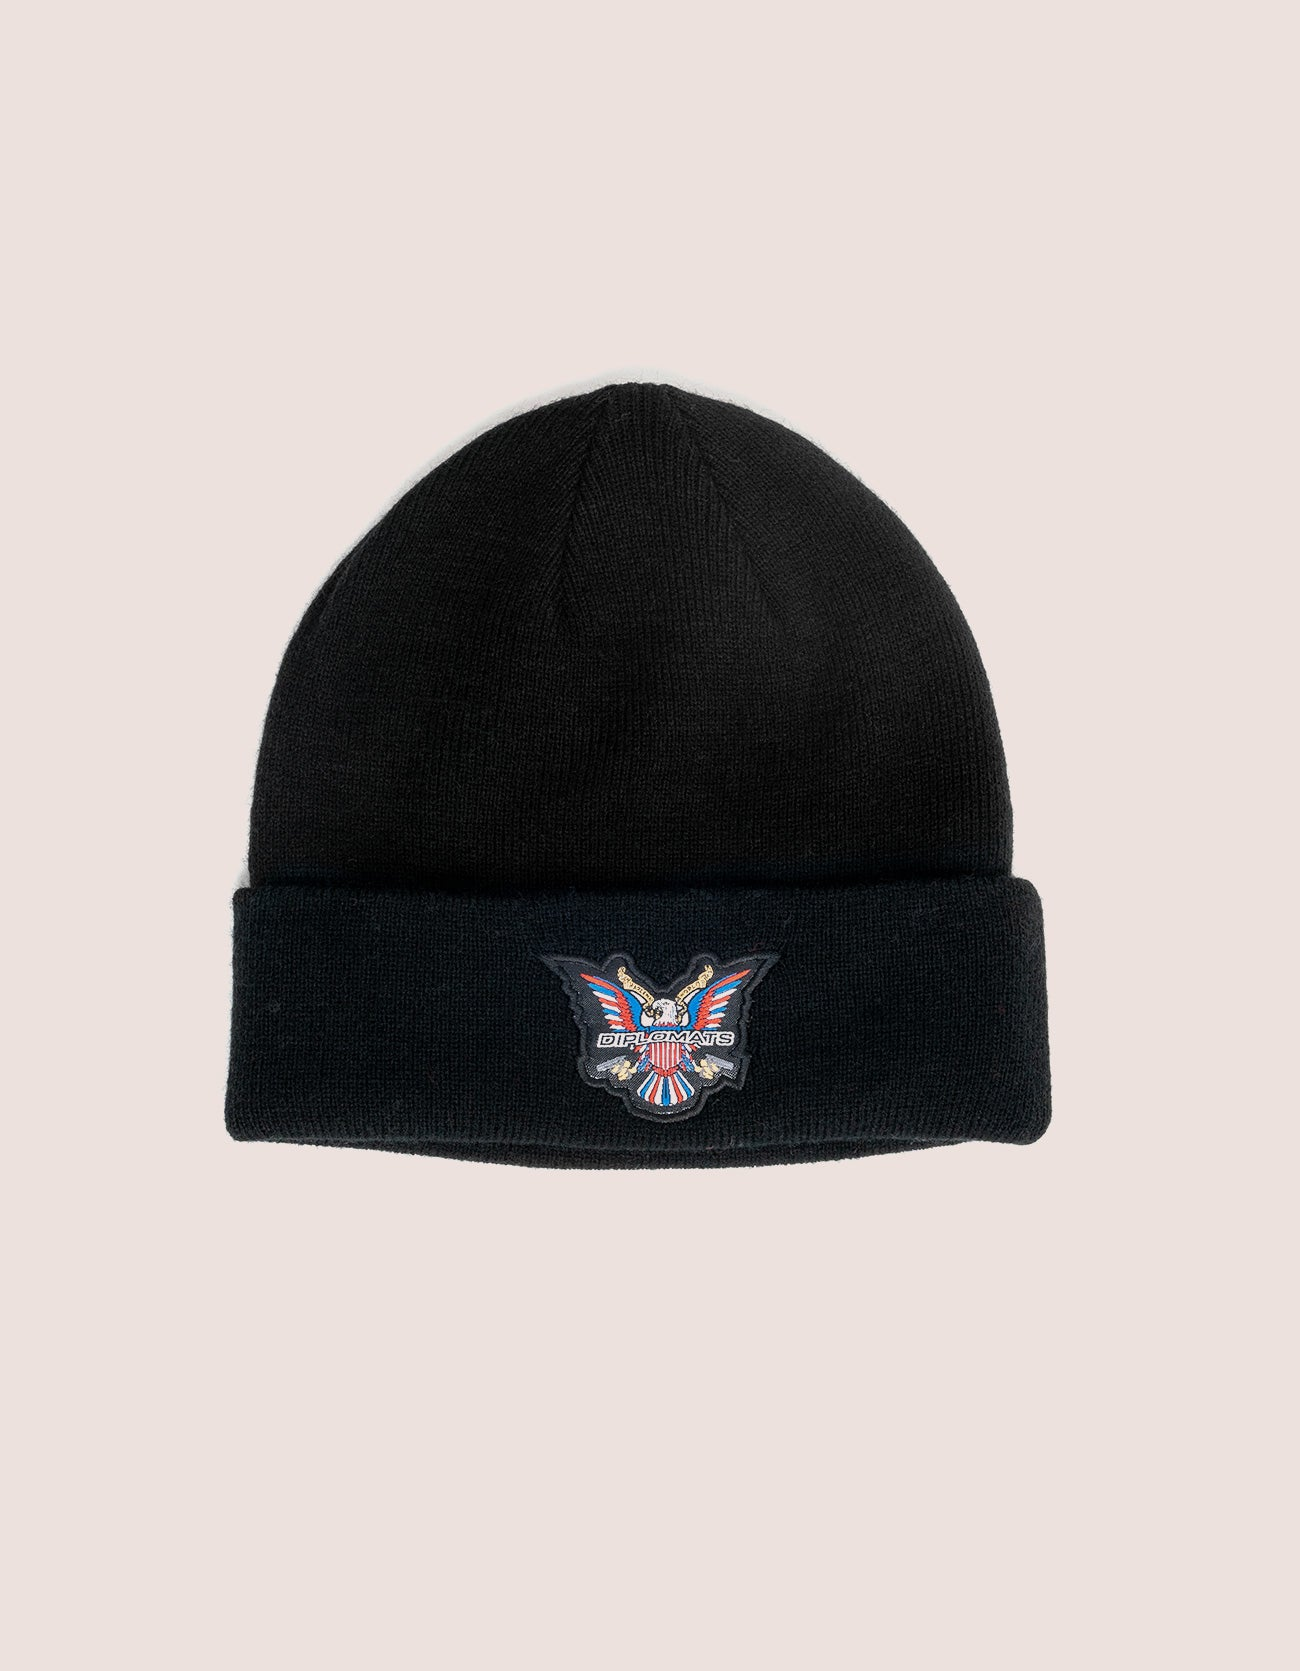 Black Dipset Couture Beanie